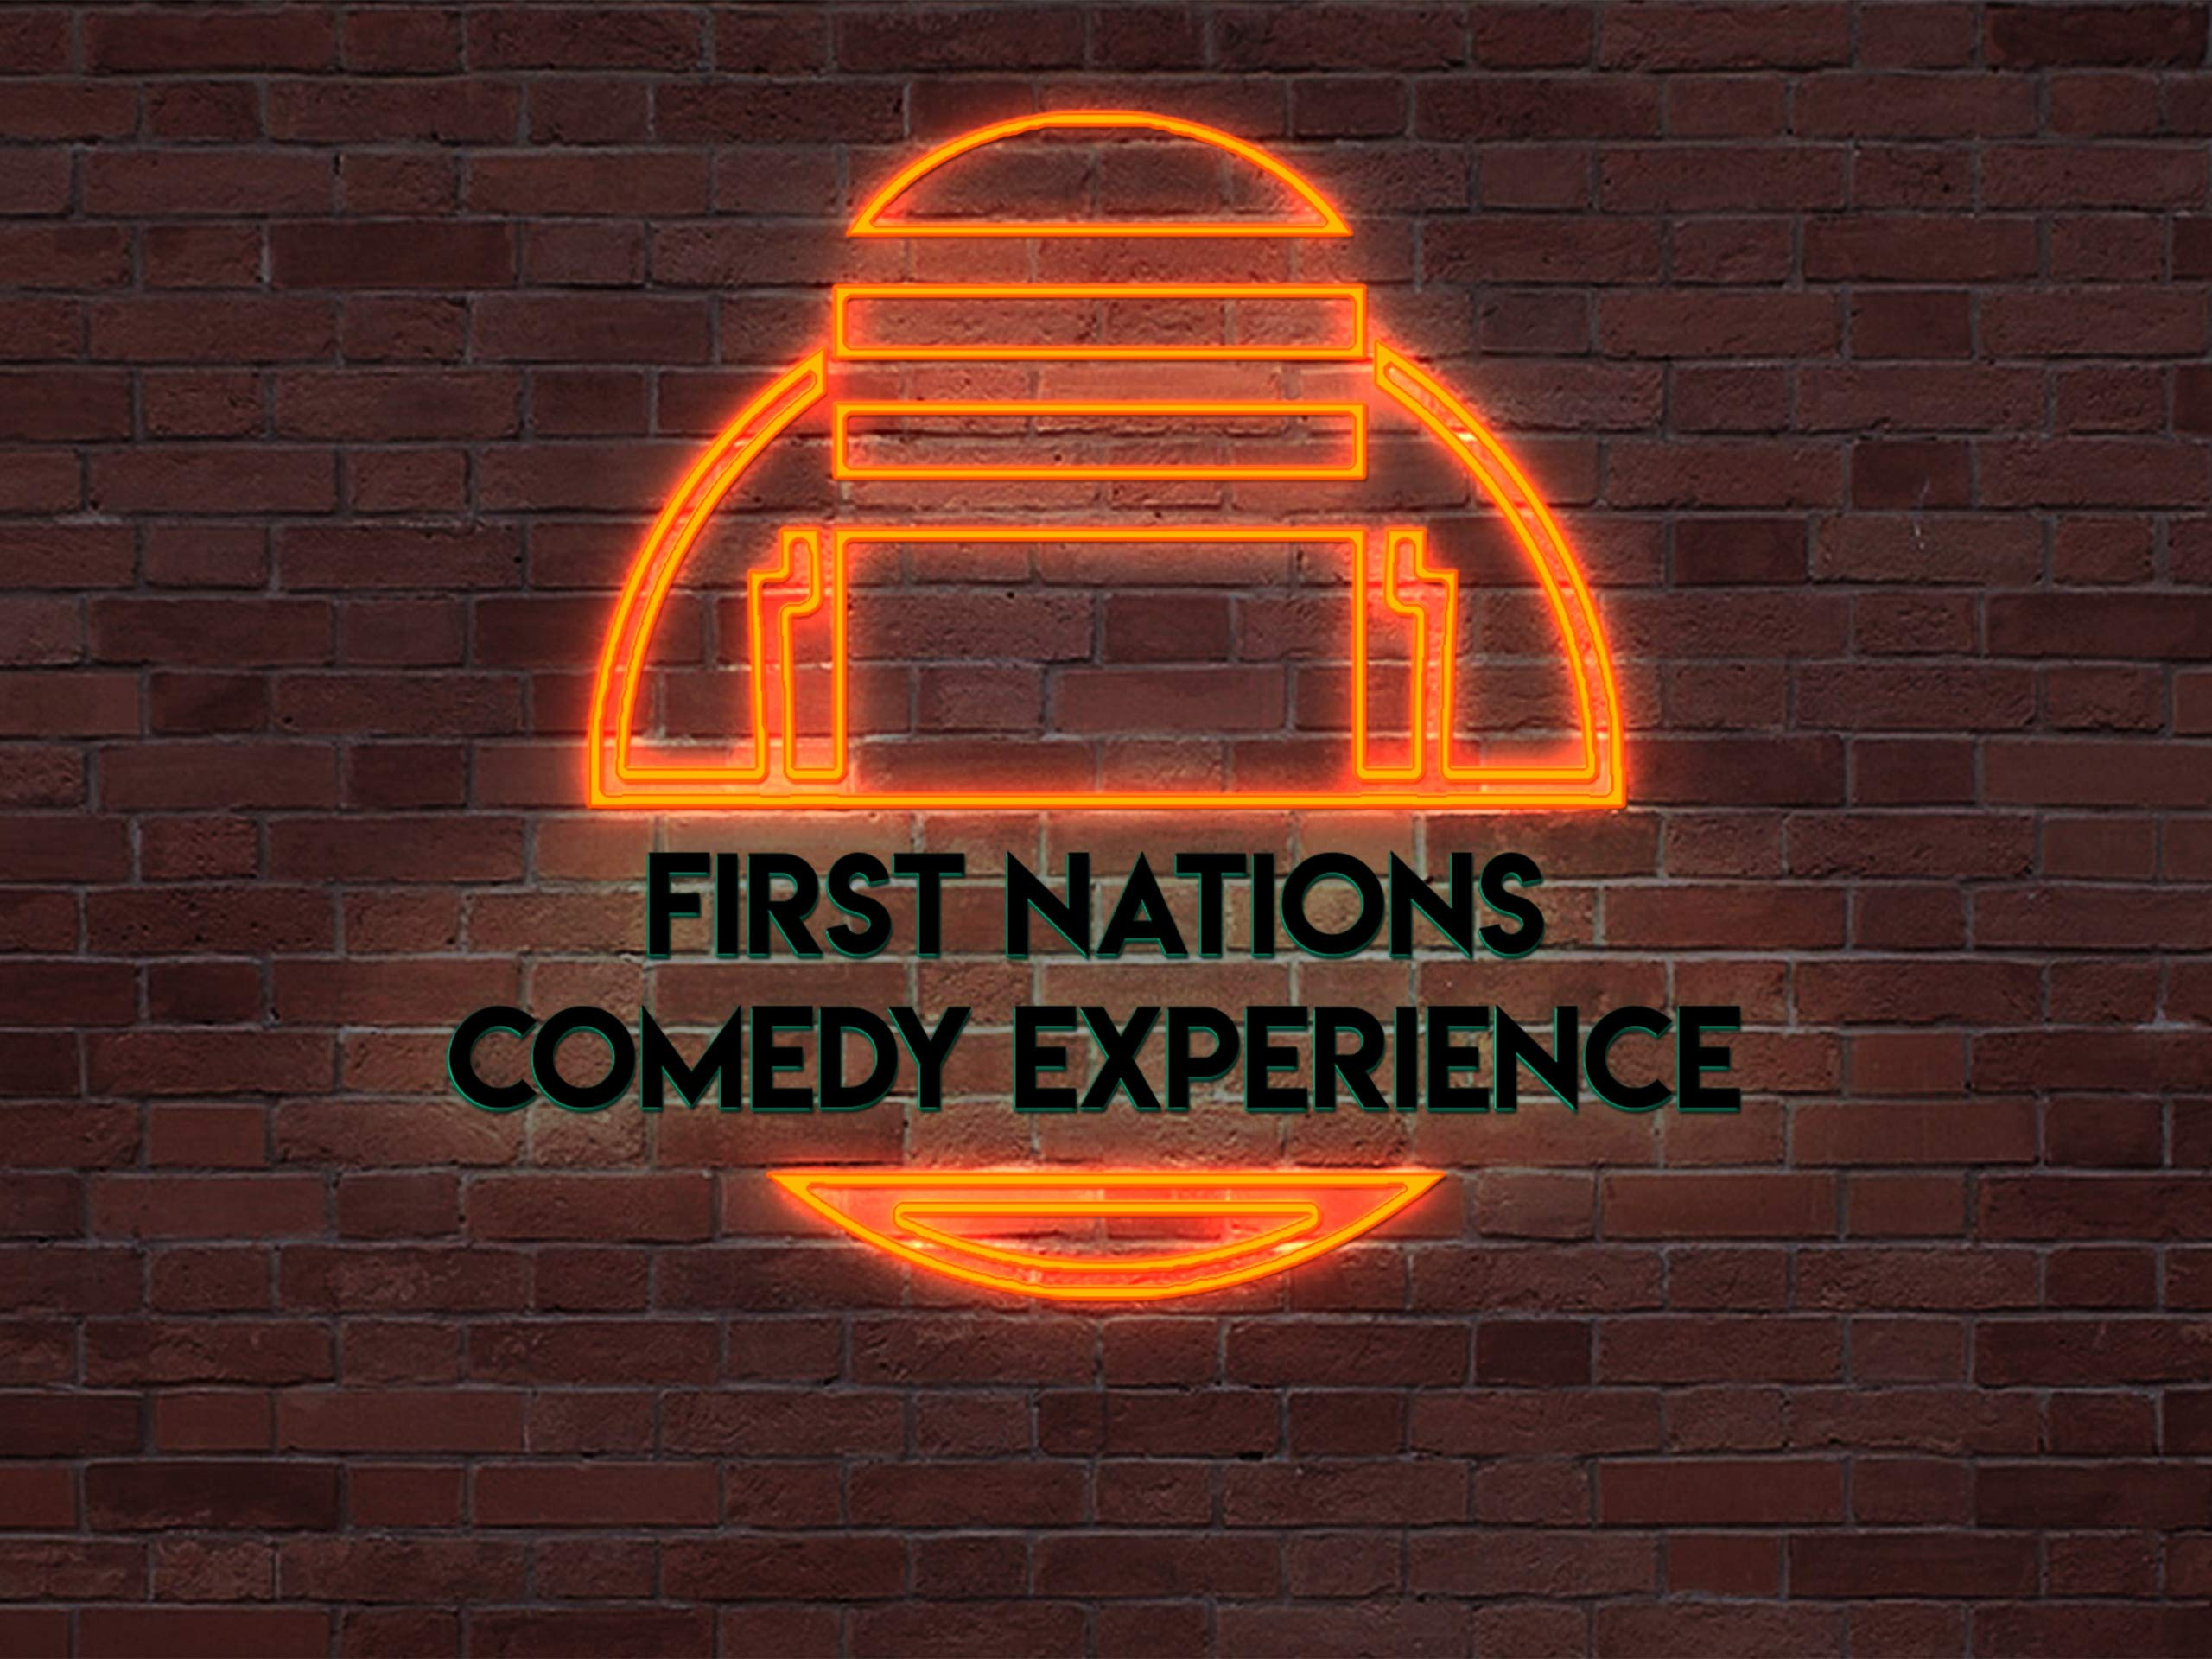 First Nations Comedy Experience